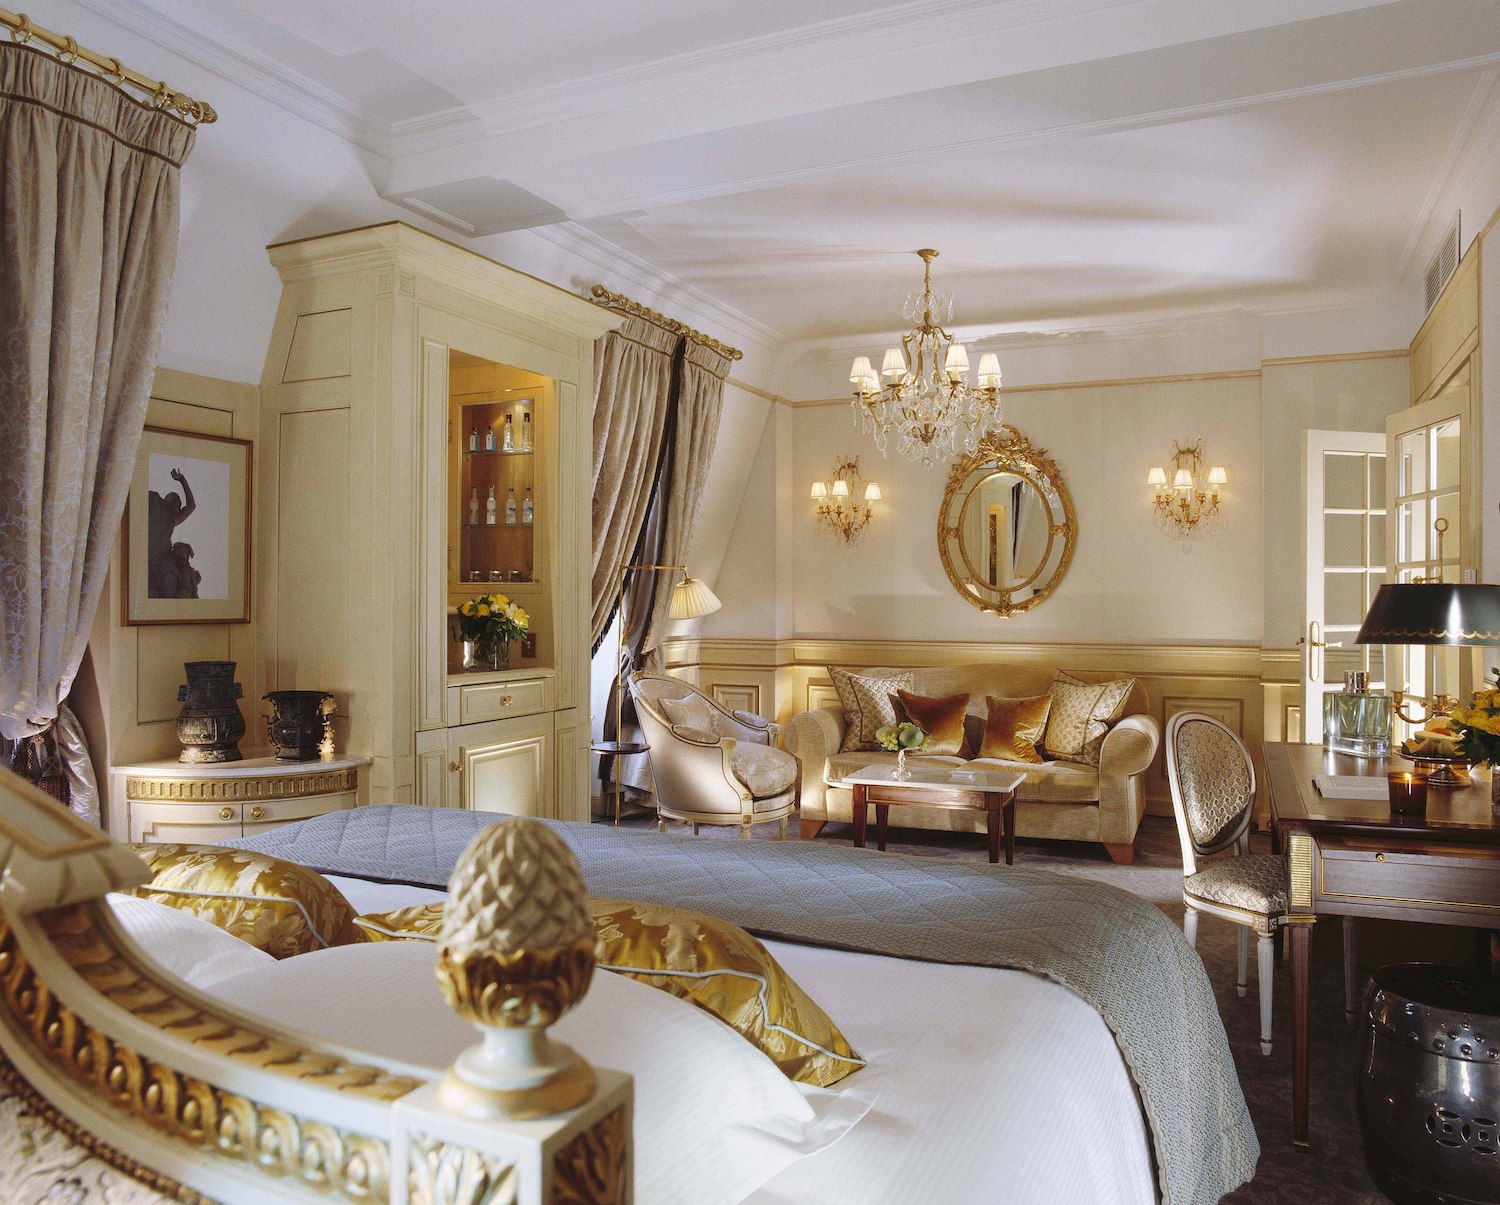 Le Meurice - Paris Hotels with Eiffel Tower View